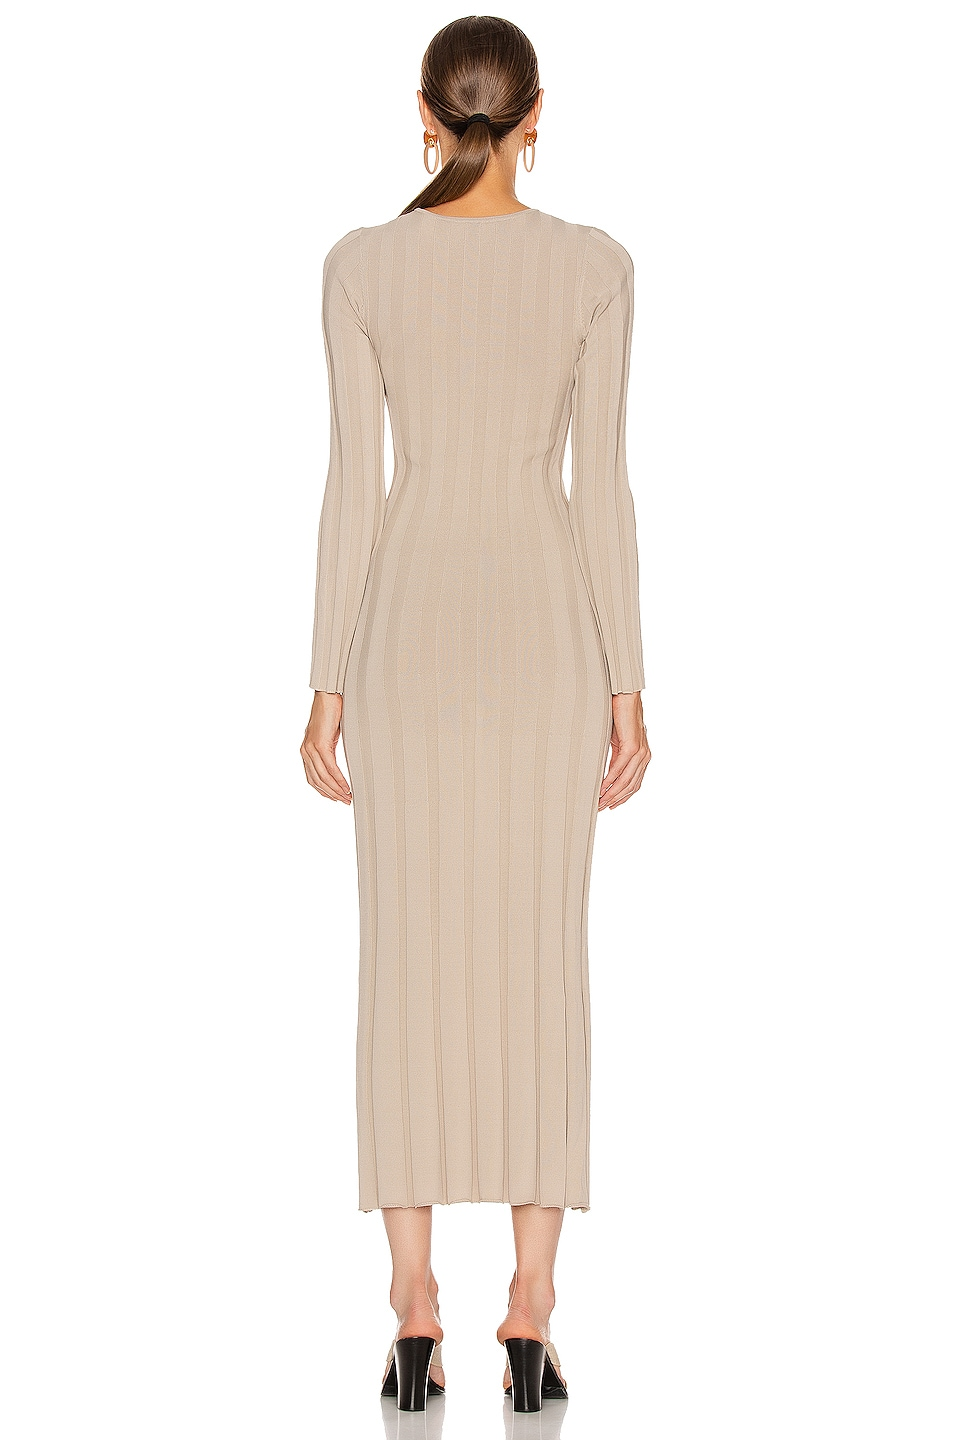 Image 3 of Toteme Bianco Dress in Sand